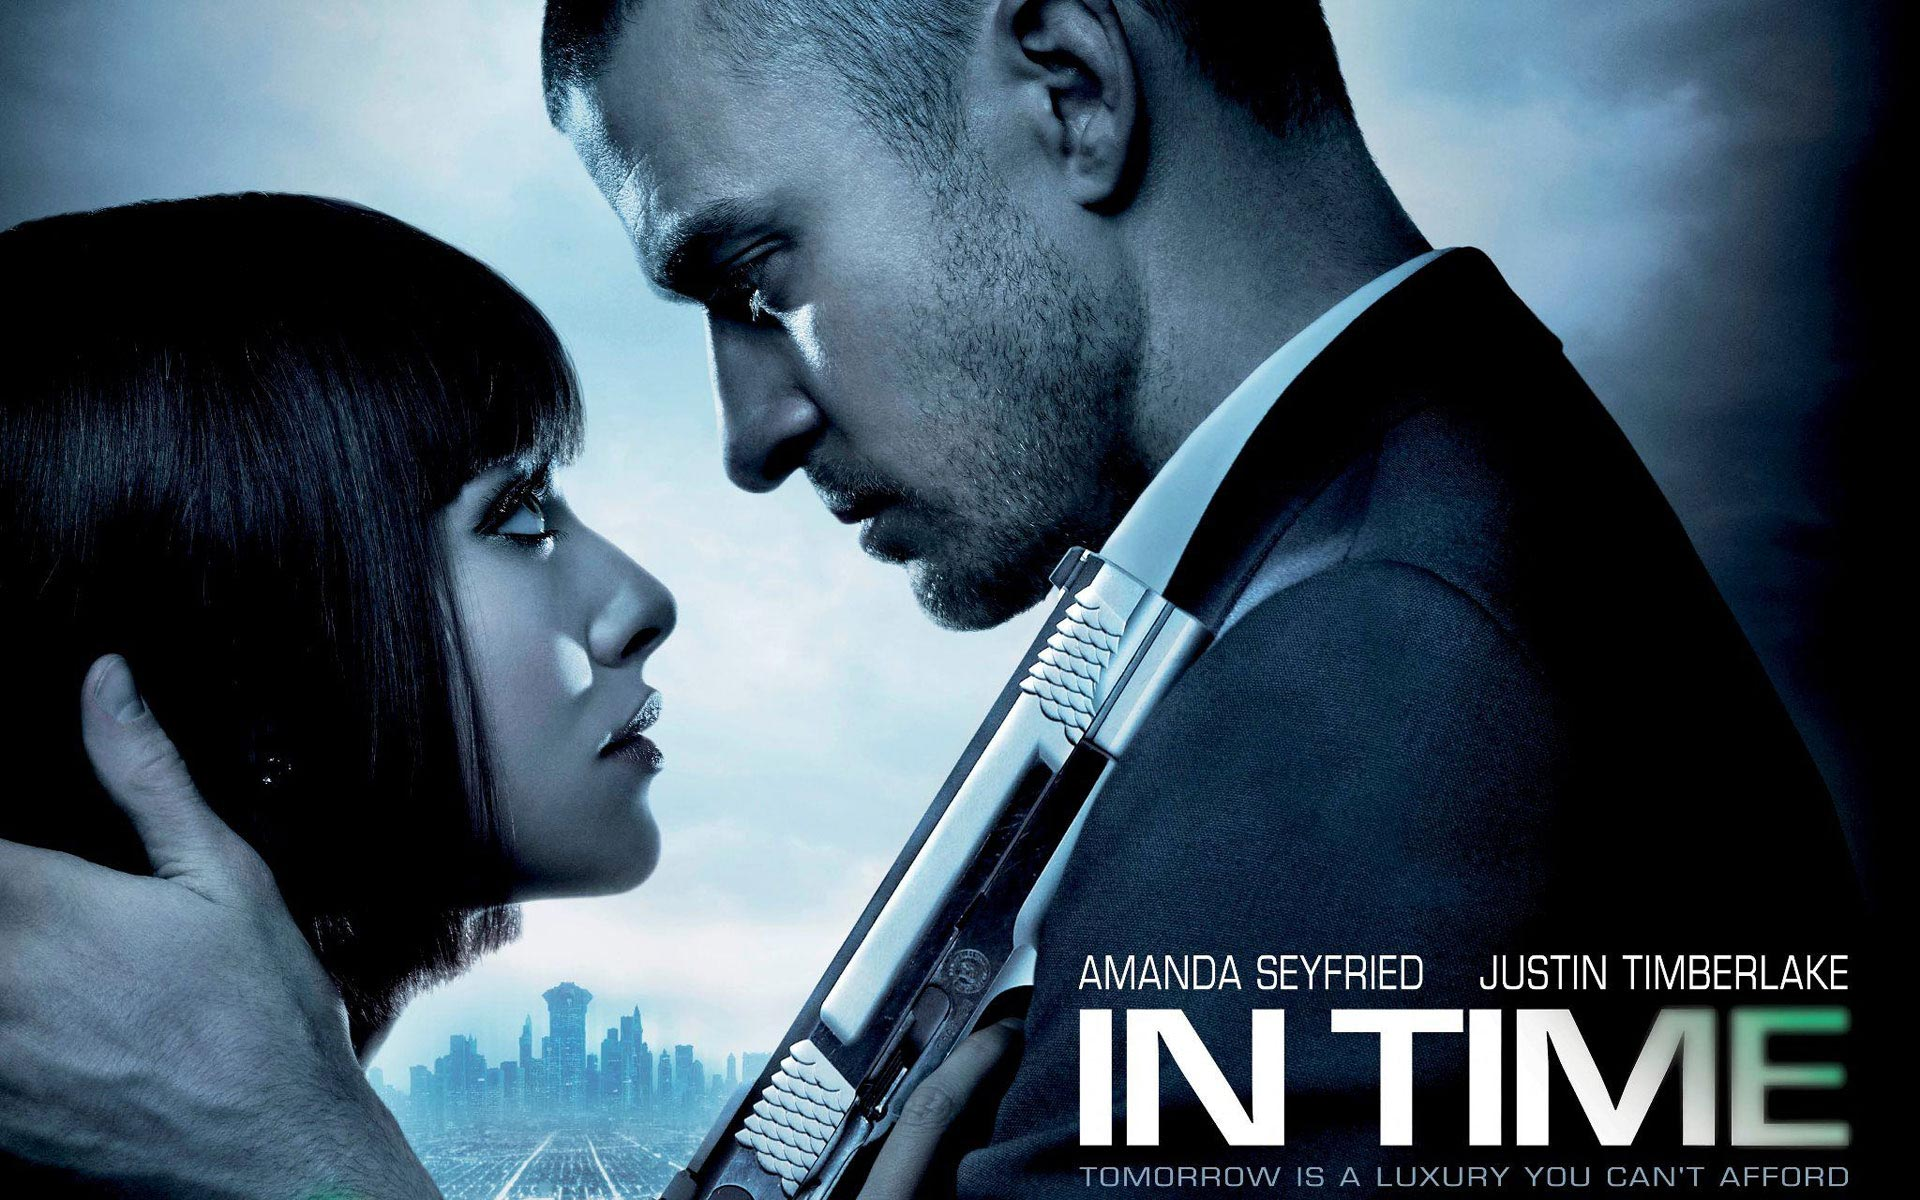 Film About Time New Crime Drama Movies 2013